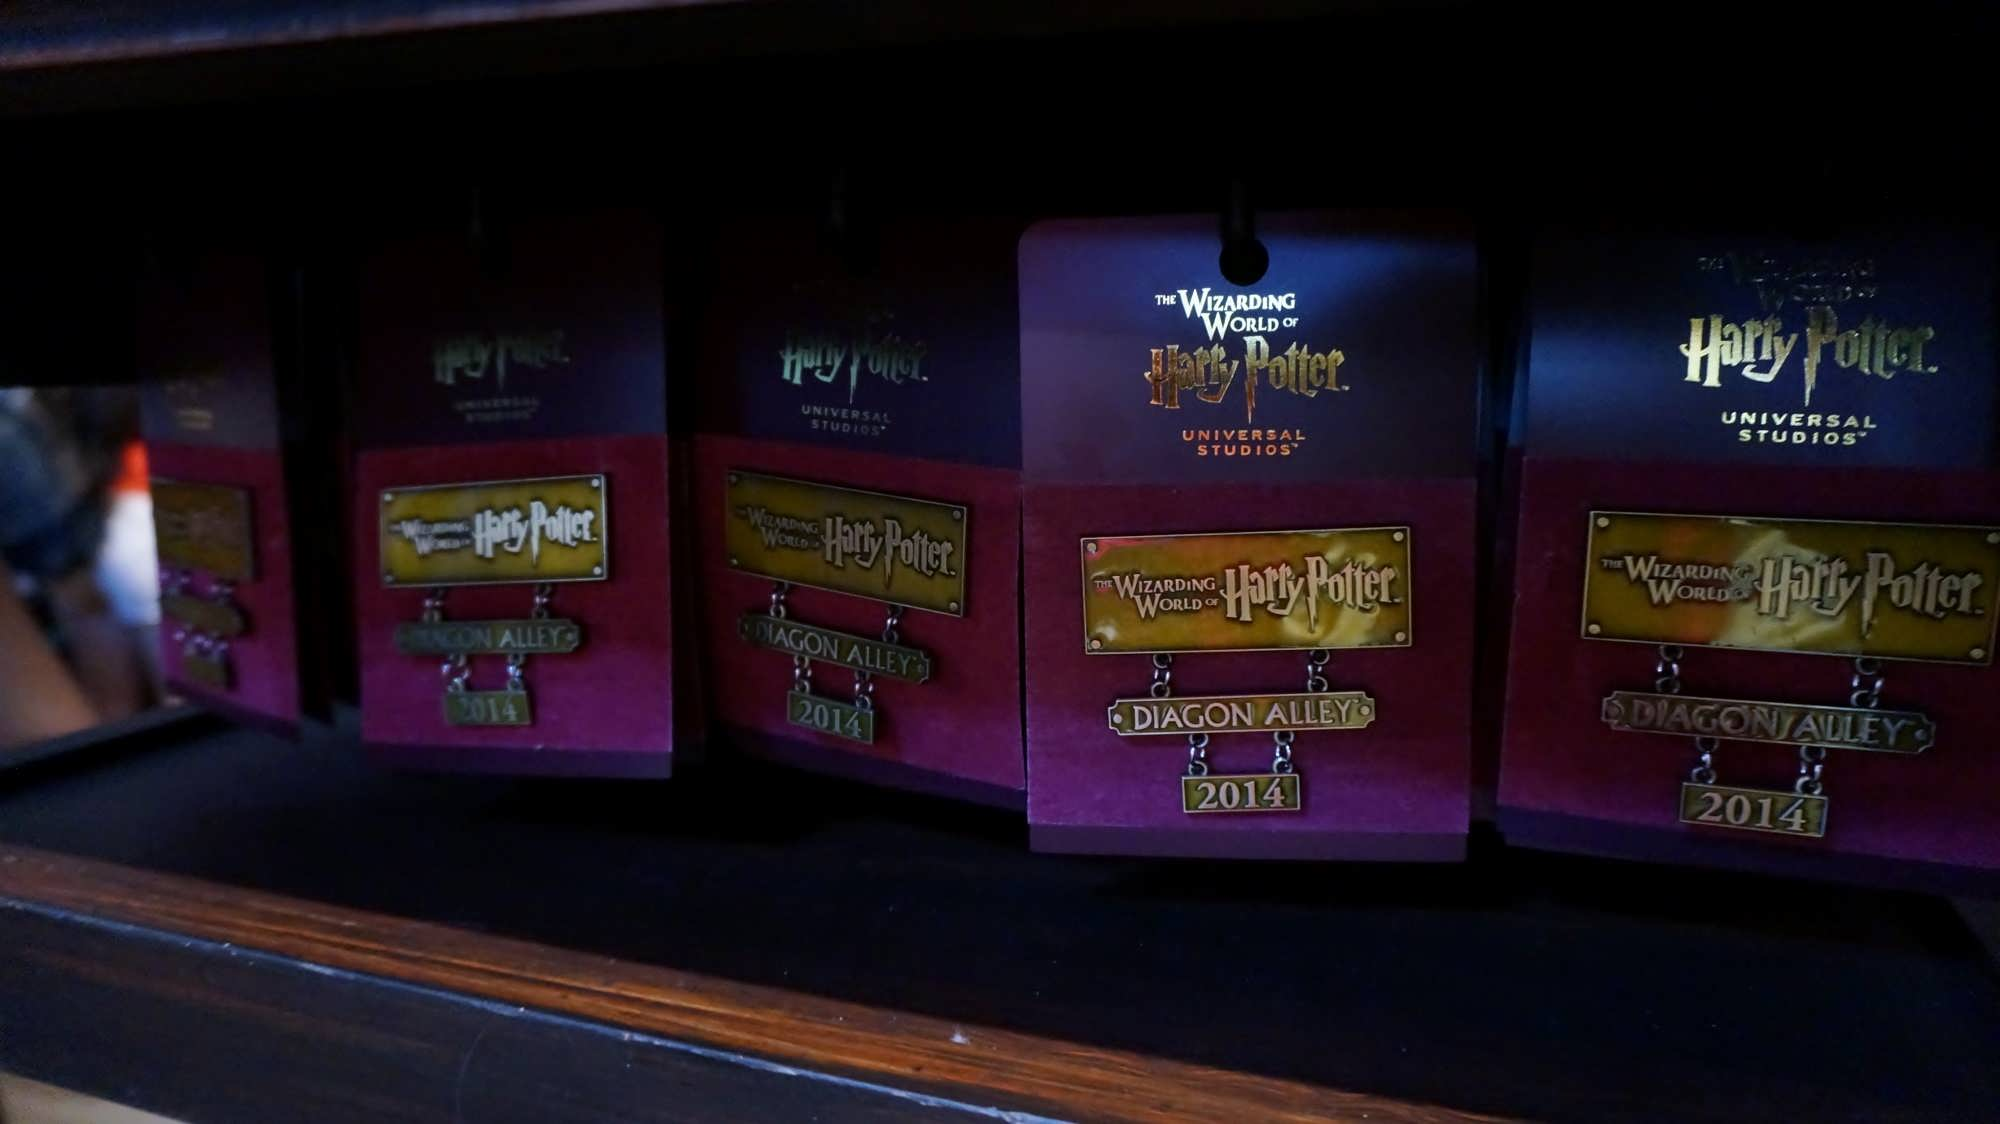 Diagon Alley opening commemorative pin at The Wizarding World of Harry Potter - Diagon Alley